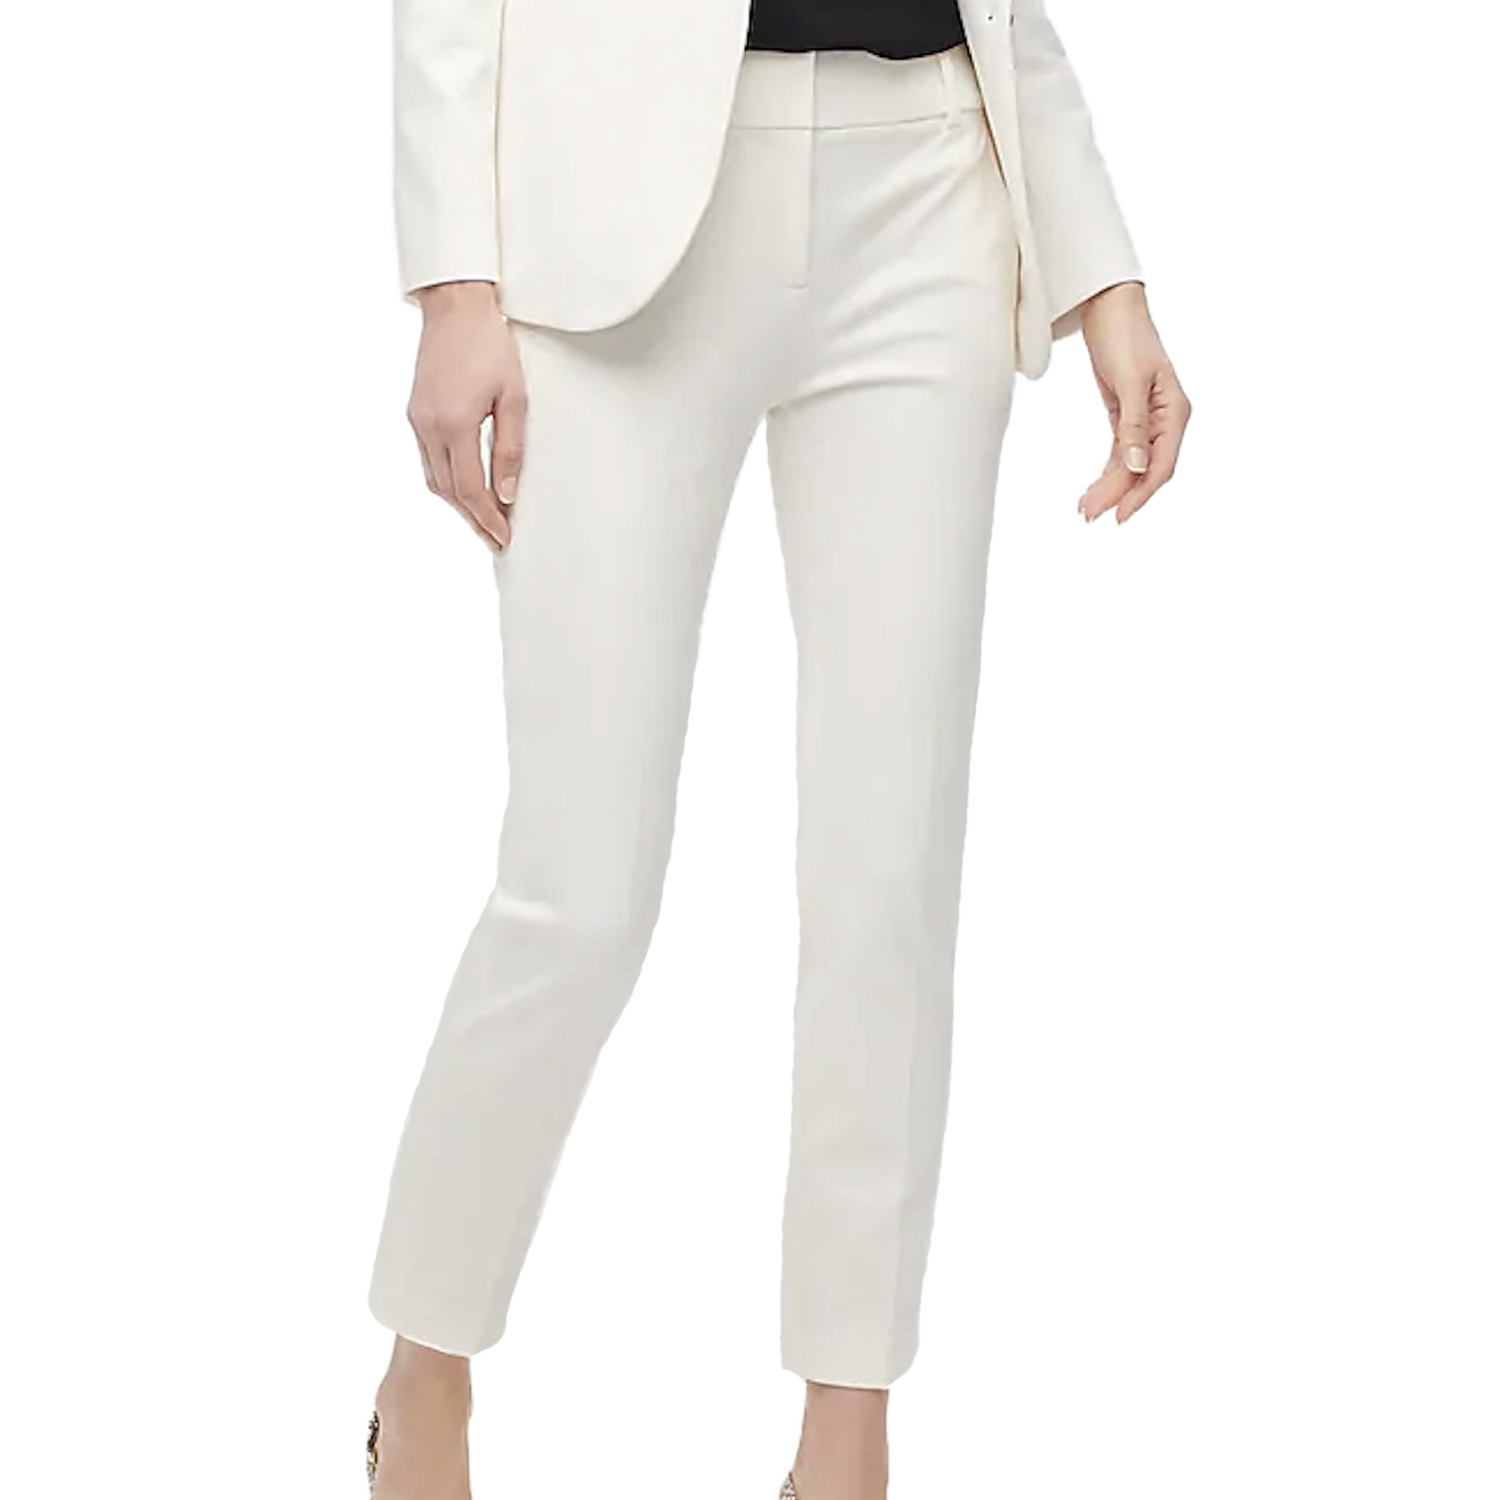 J.Crew White Cotton Pants